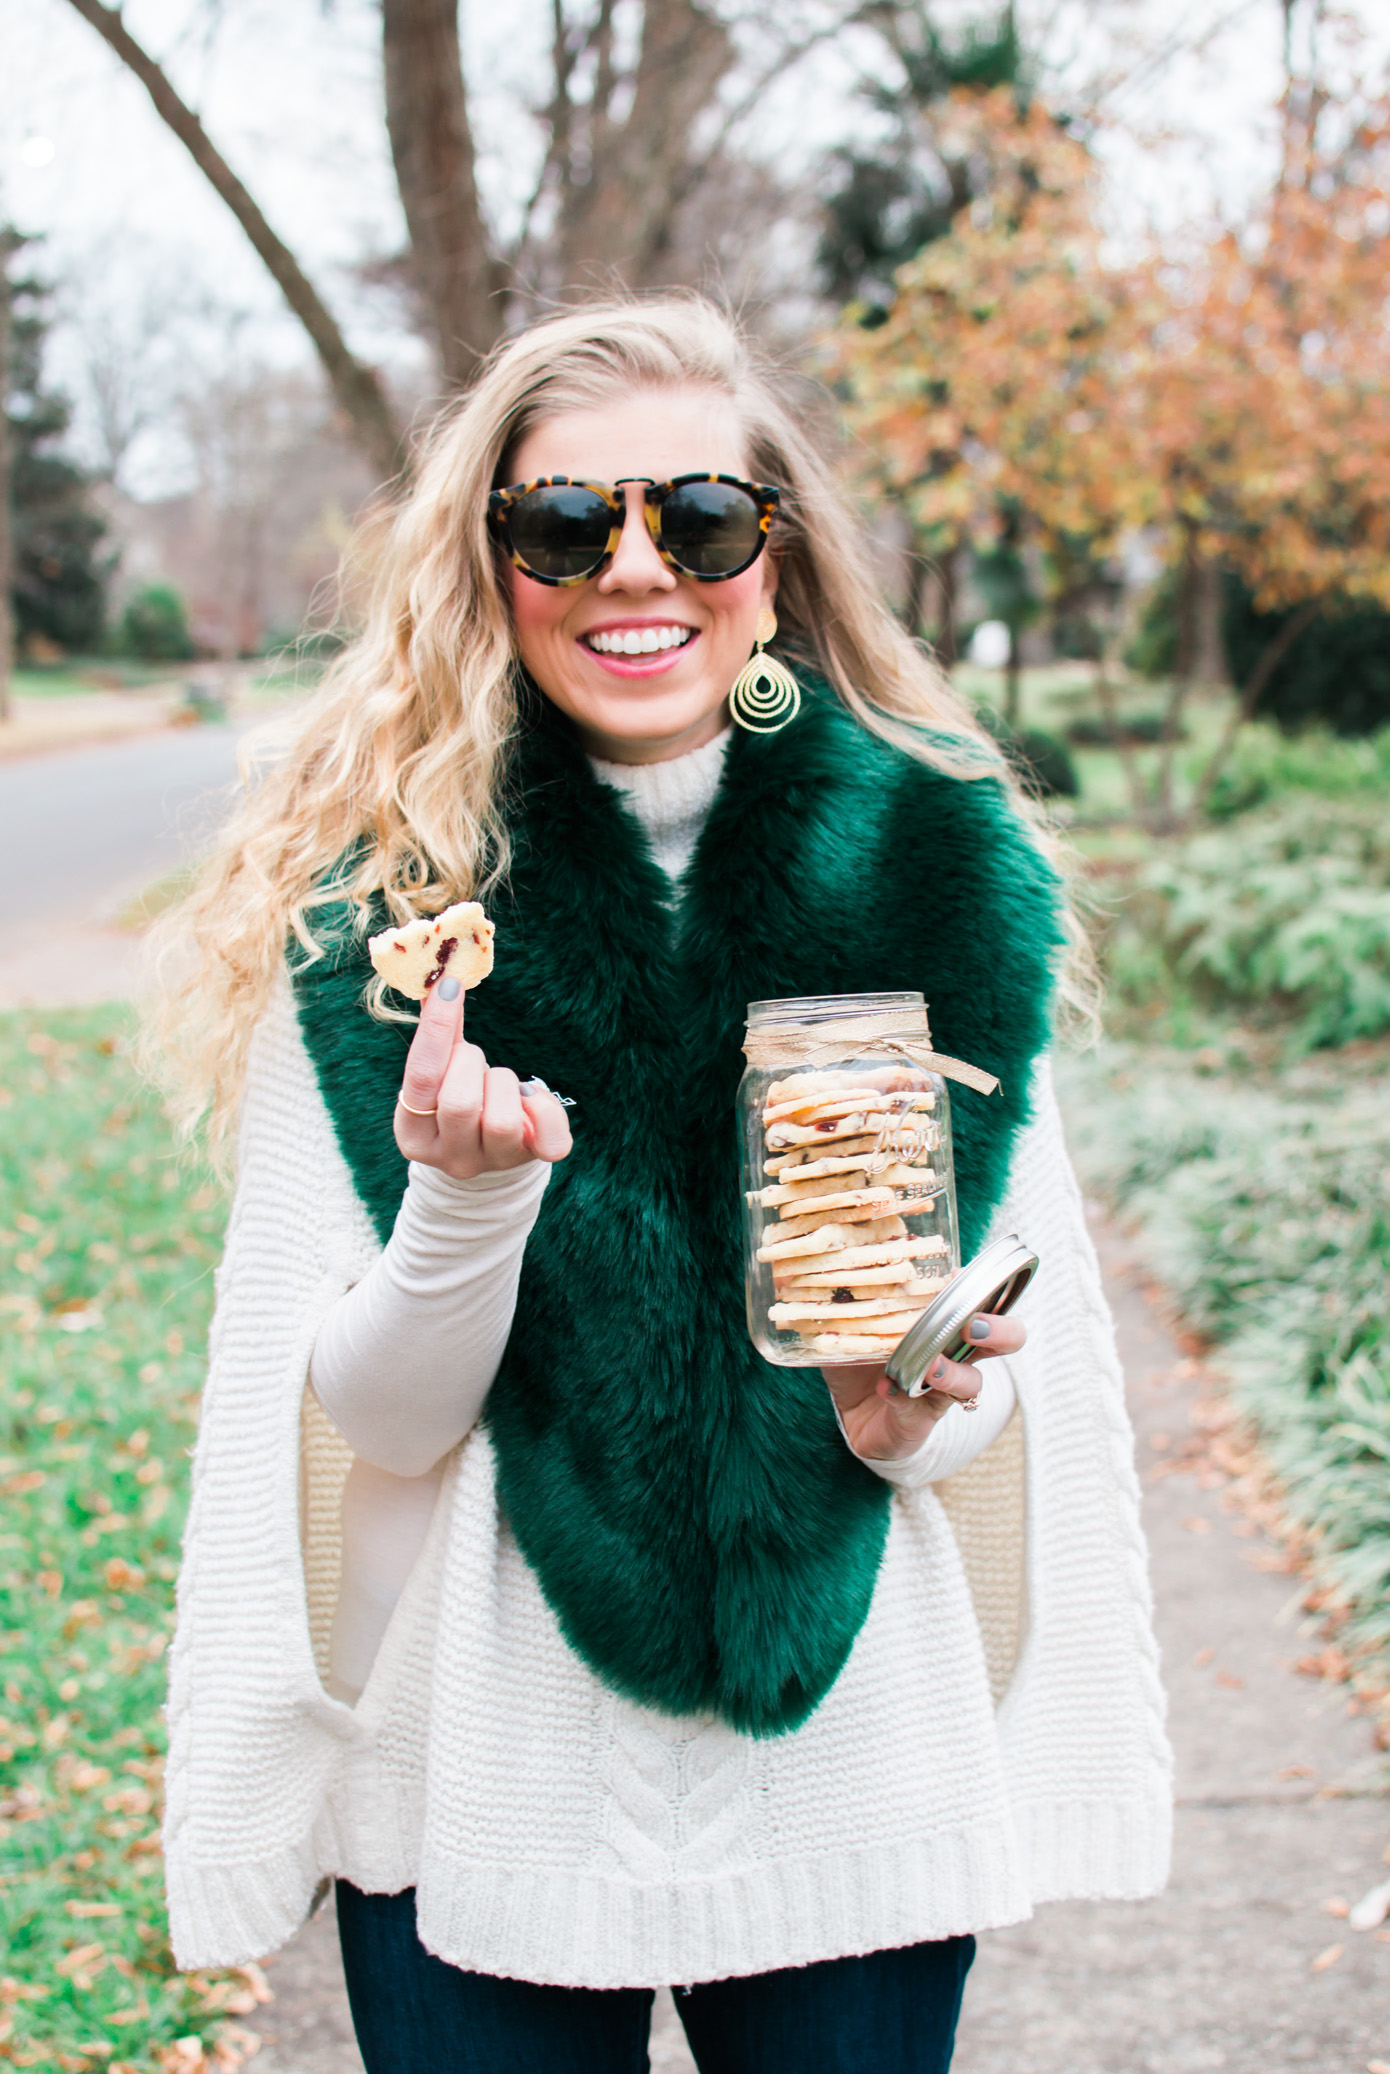 Third Annual Cookie Exchange | Christmas Cookie Recipes | Louella Reese Life & Style Blog